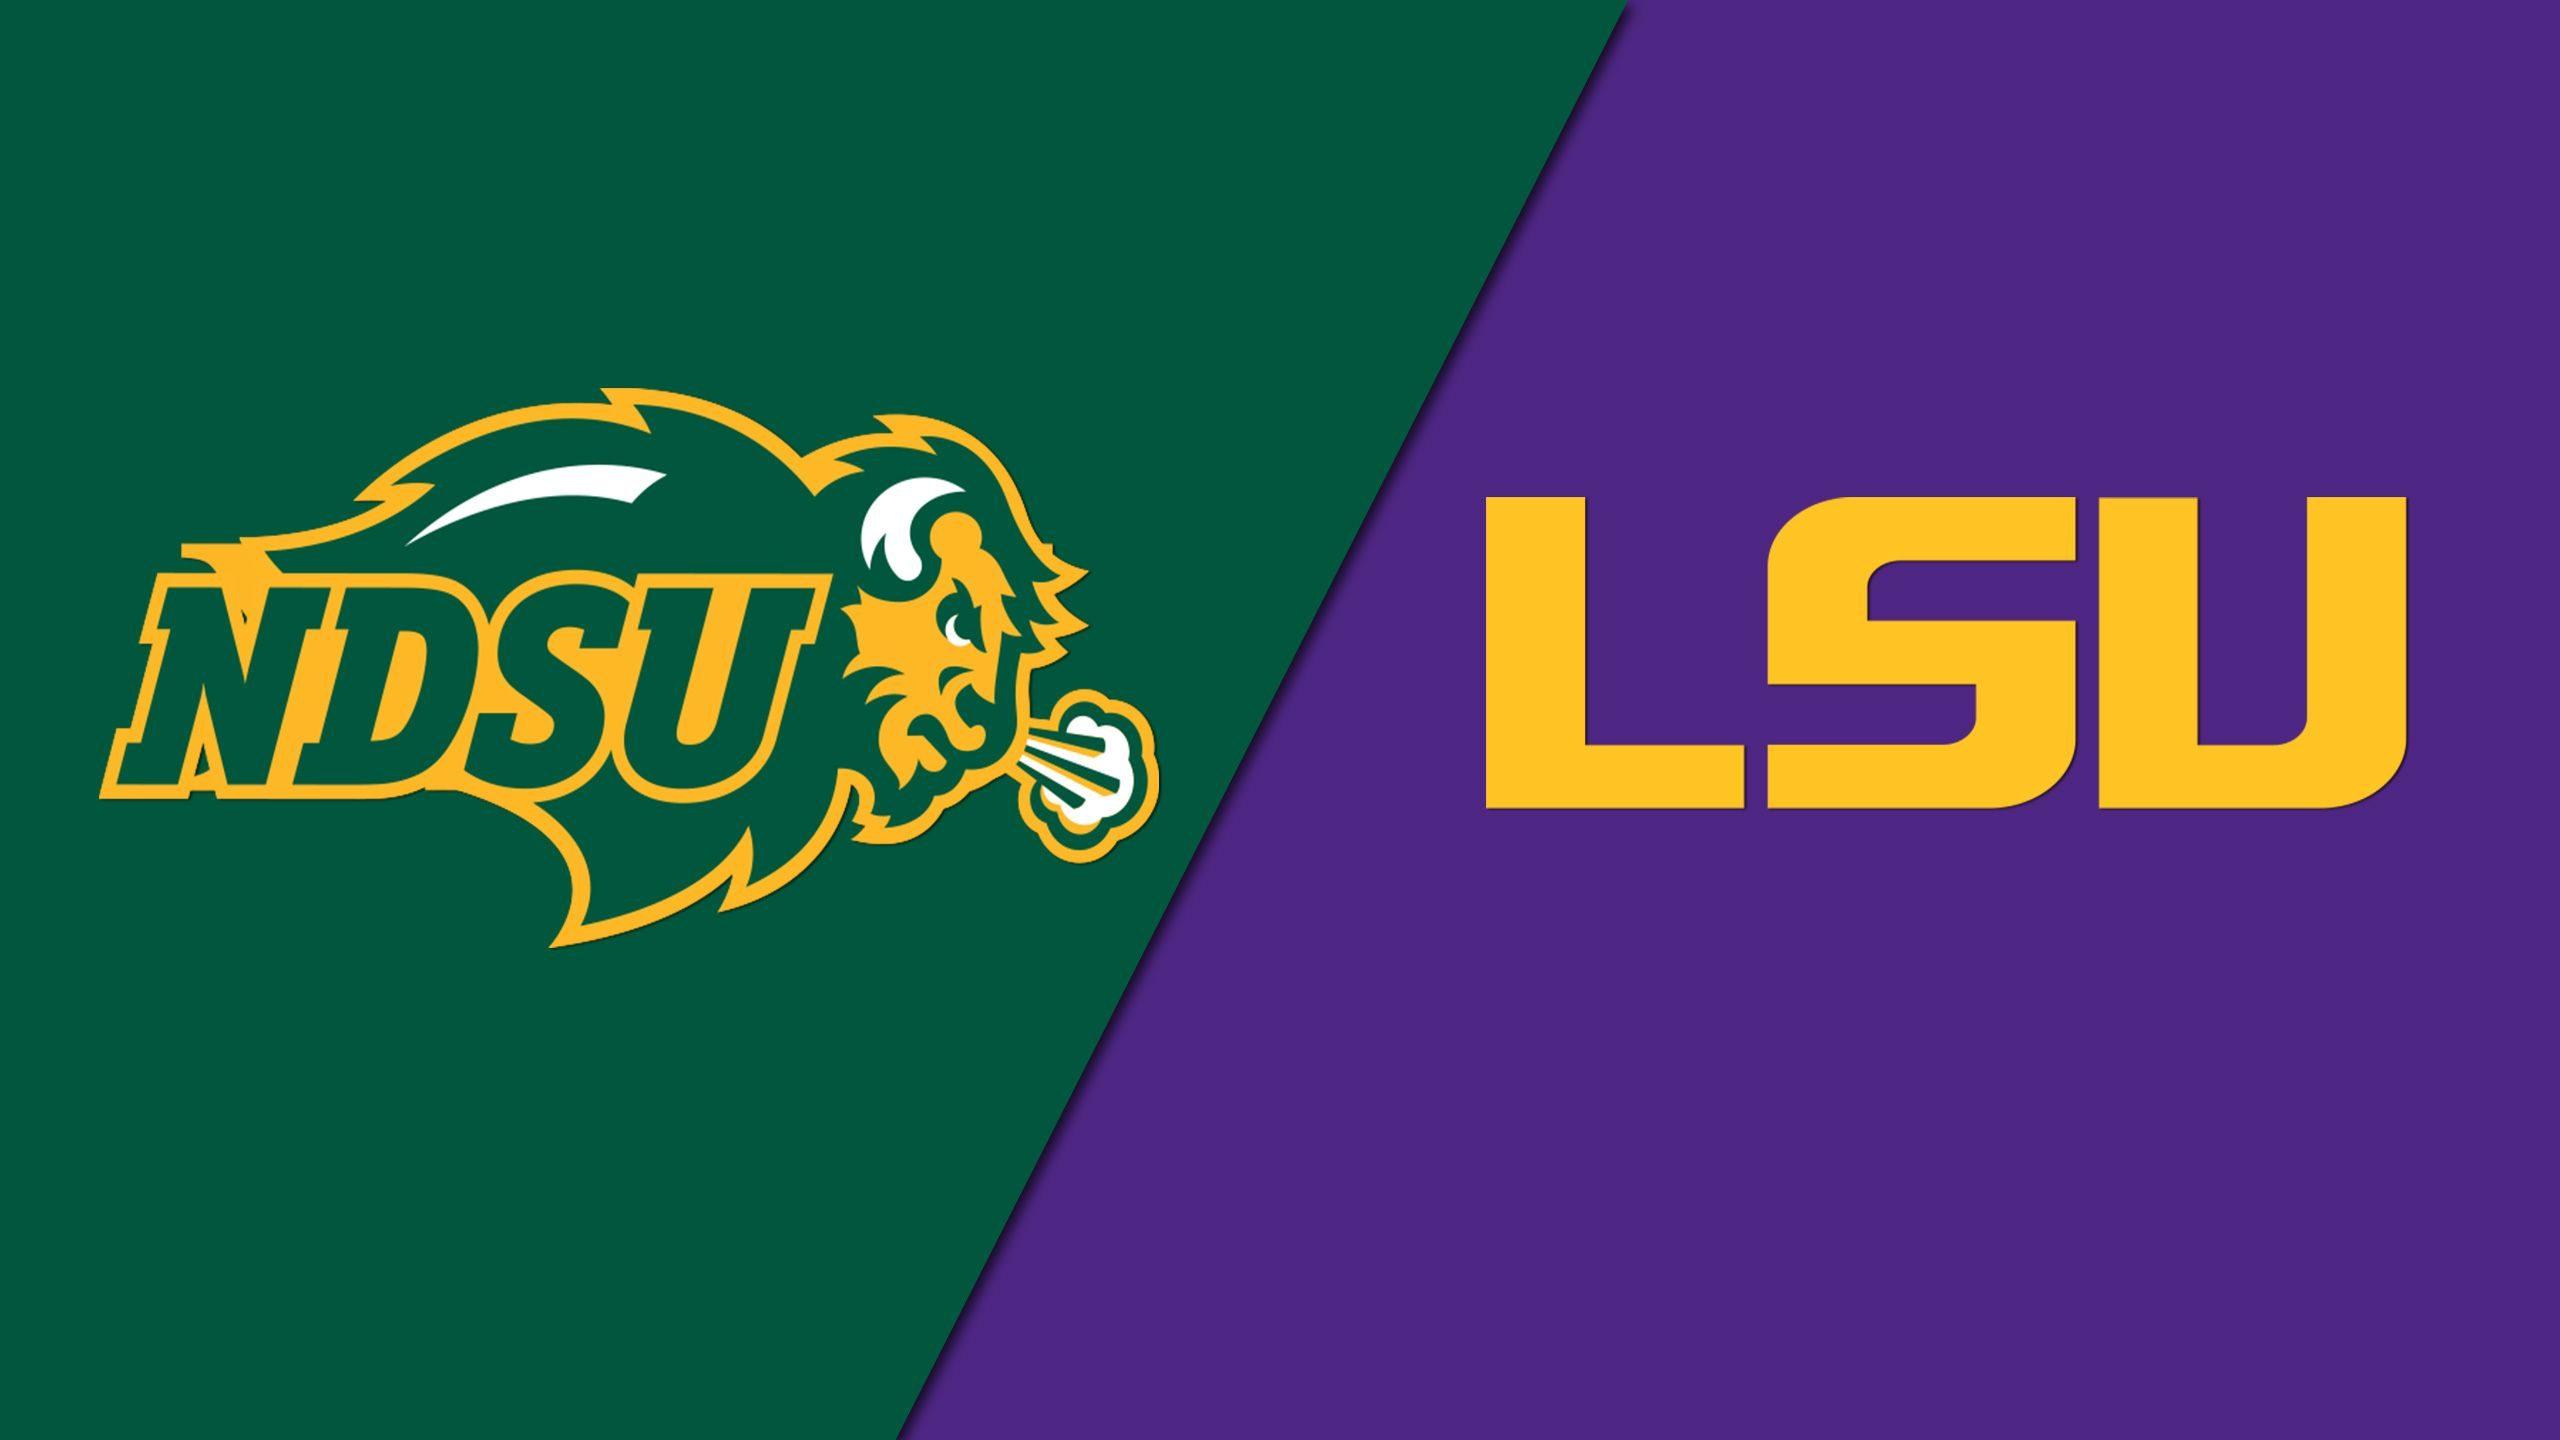 North Dakota State vs. #11 LSU (Softball)